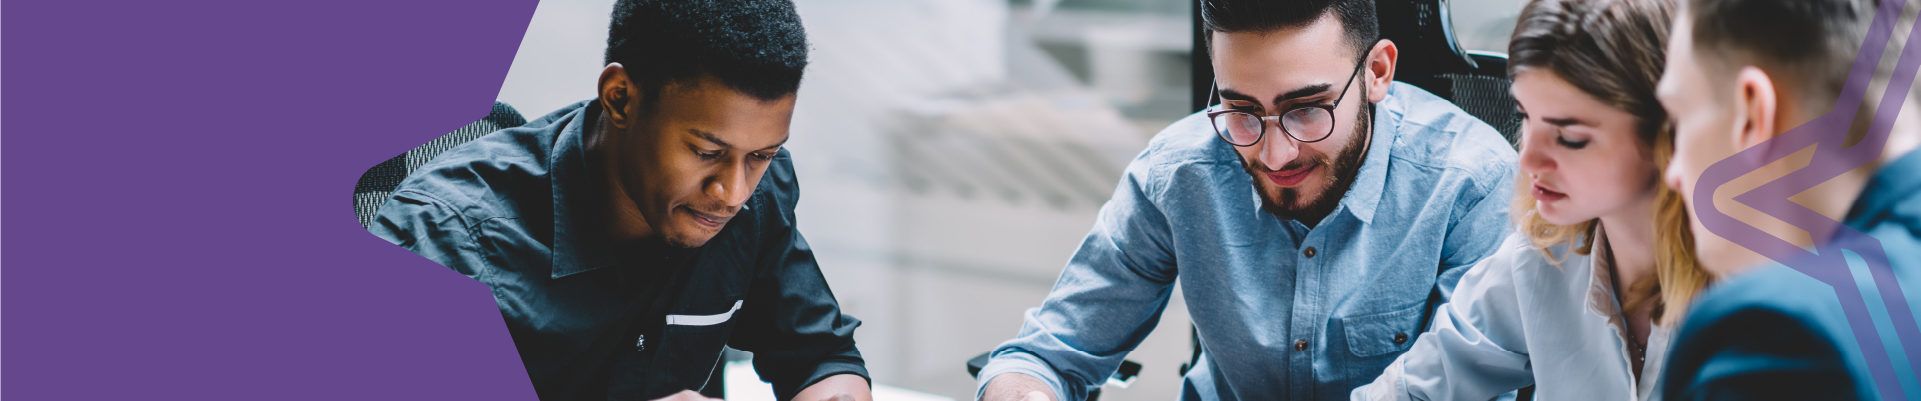 Understanding your needs before you develop your IT vendor management strategy will set up your organization for success.